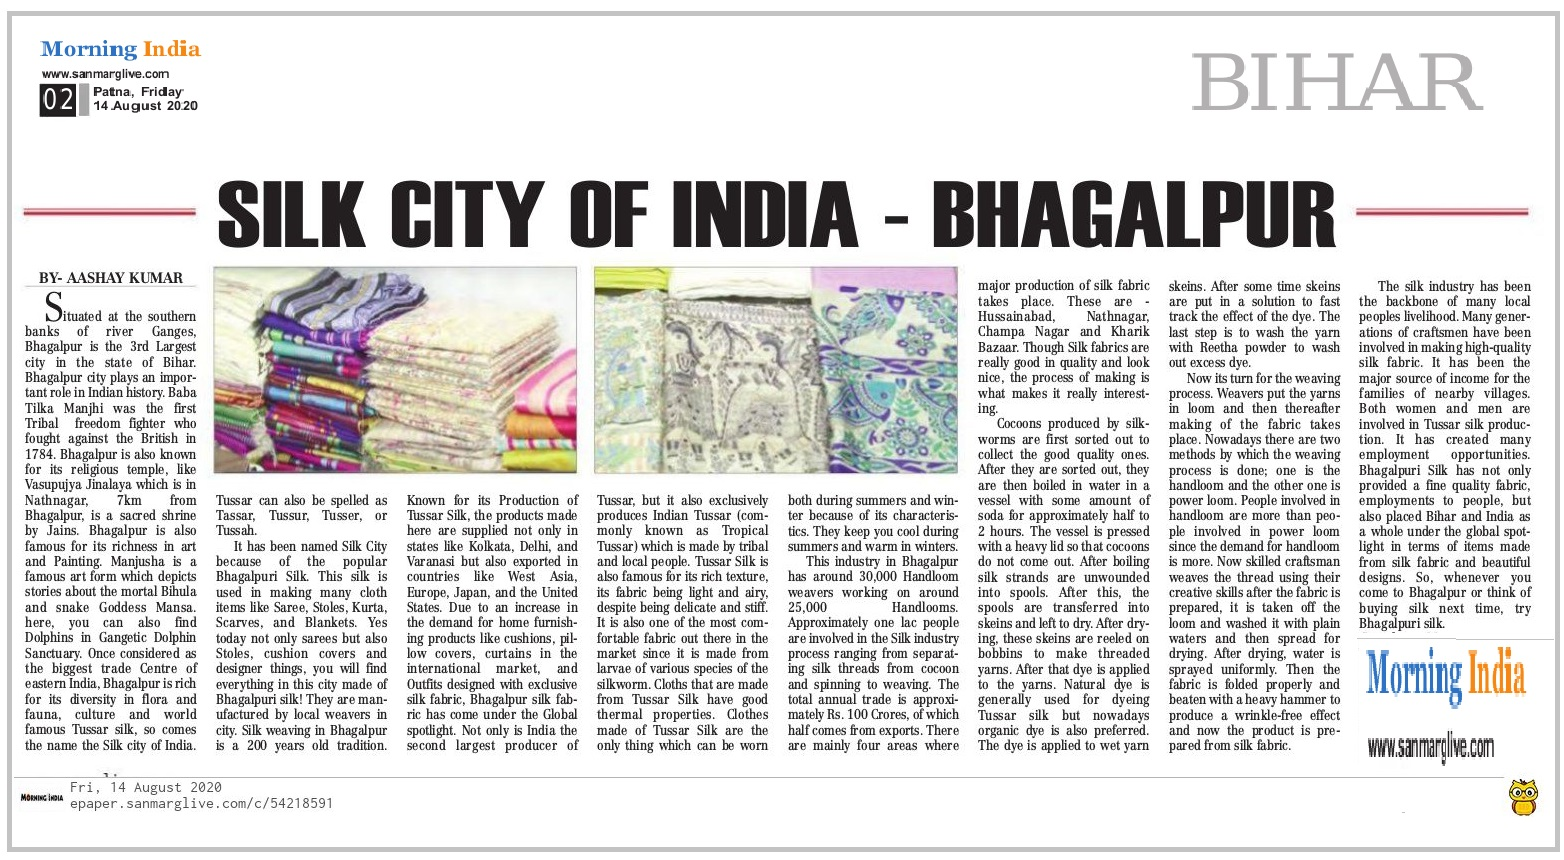 SILK CITY OF INDIA - BHAGALPUR